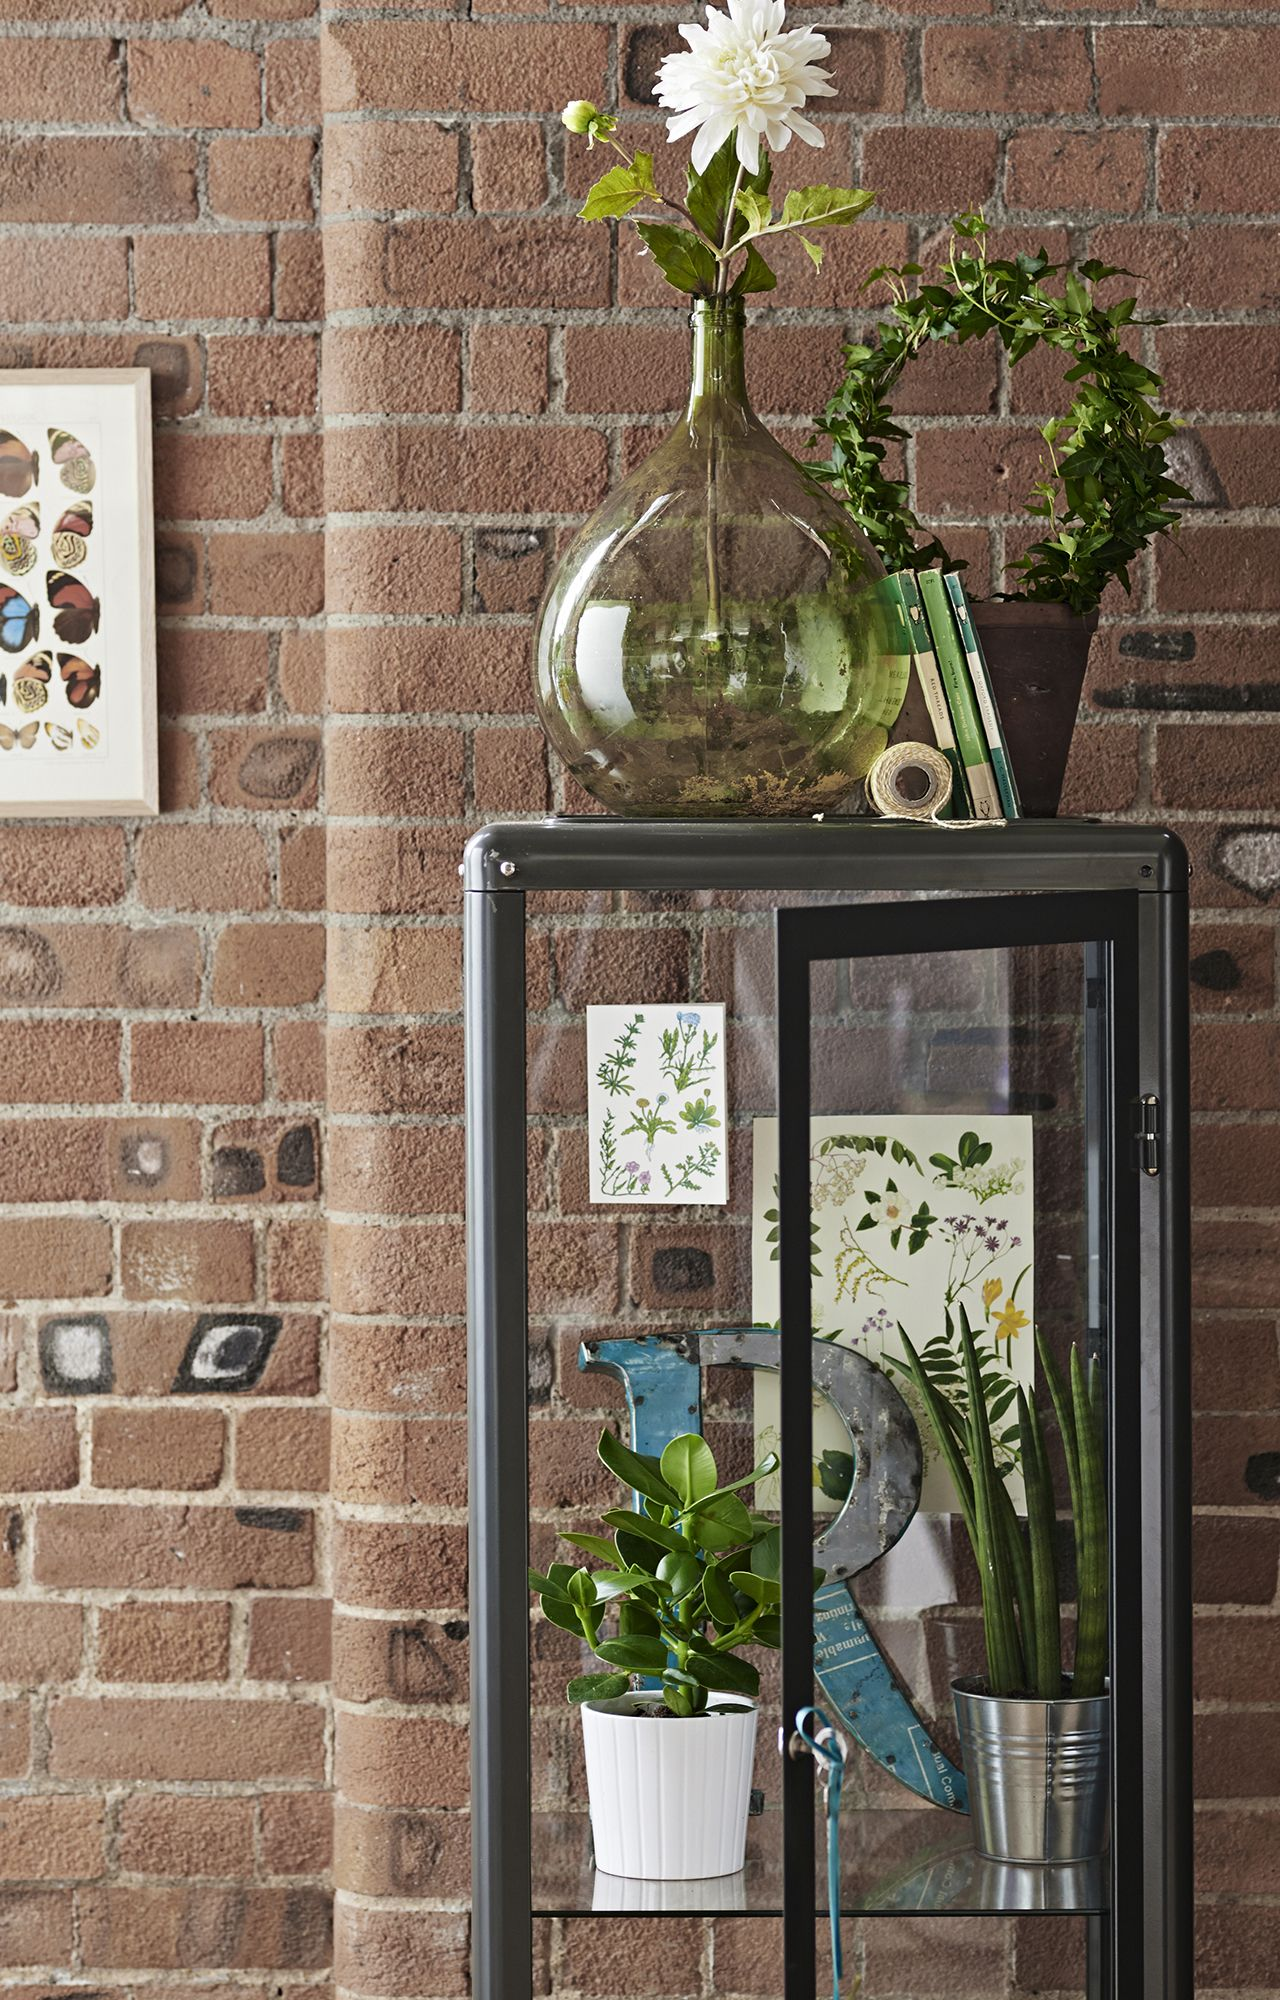 Put your favourite bits and bobs on display with our FABRIKÖR glass-door cabinet. You can have tons of fun mixing in old and new elements, plants and prints.